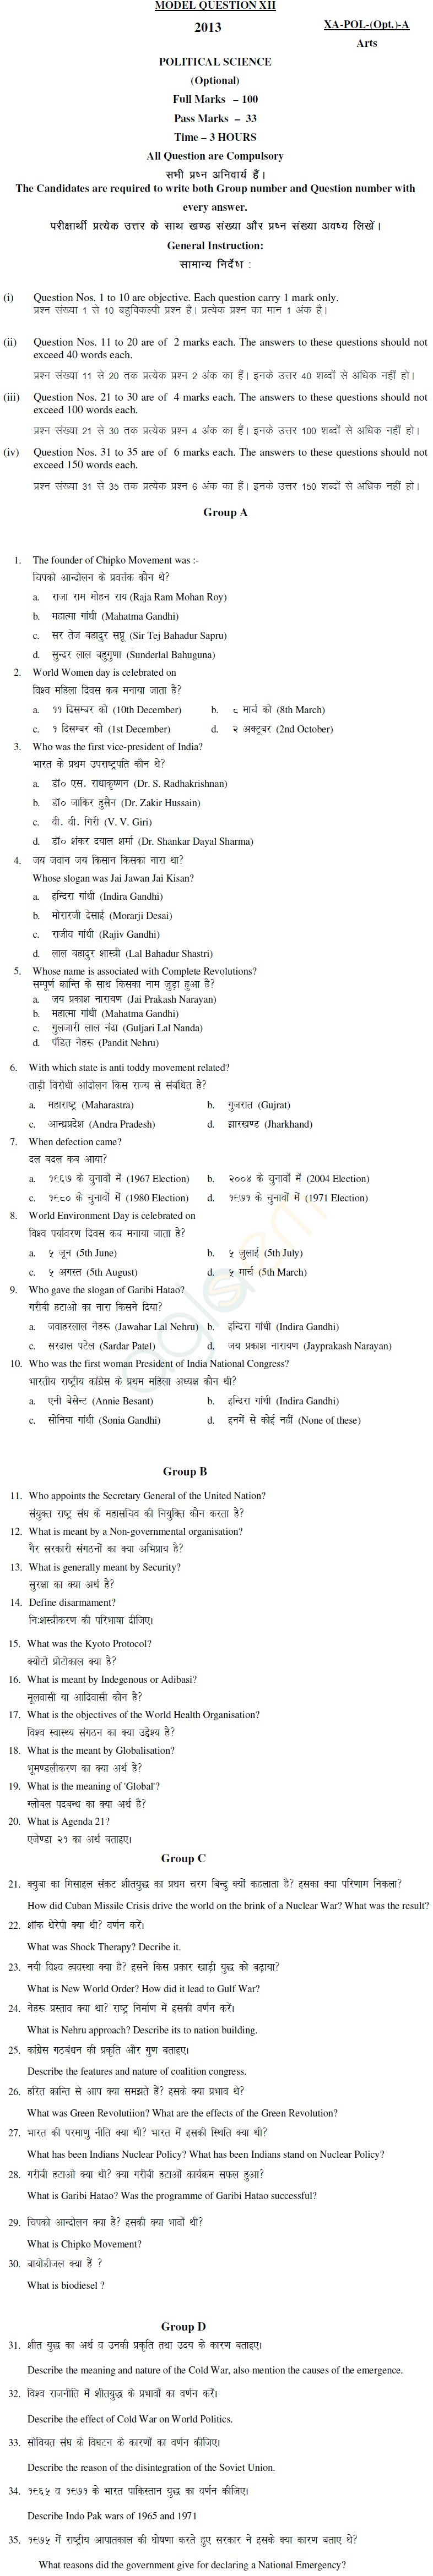 Jharkhand Board Class XII Sample Papers – POLITICAL SCIENCE